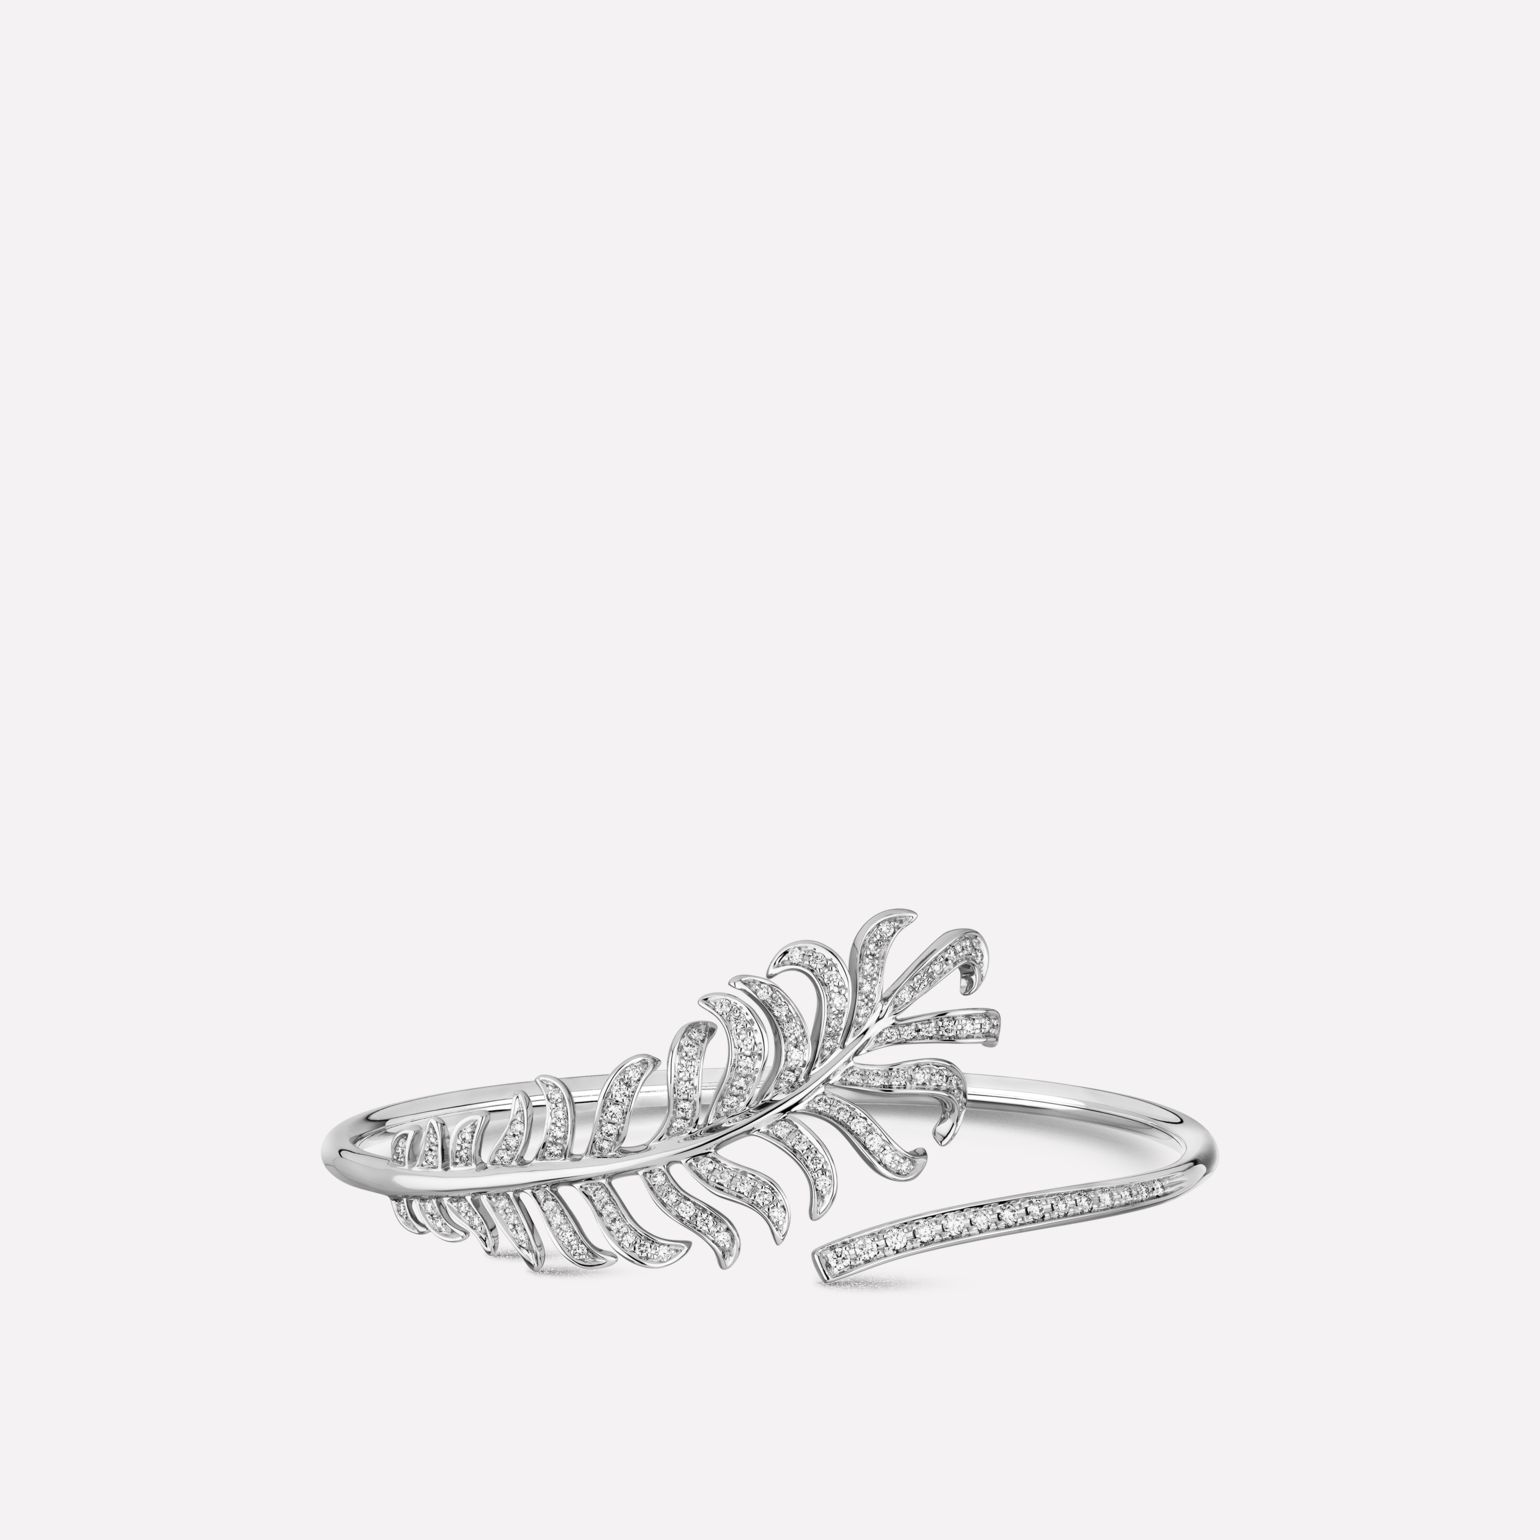 Plume de CHANEL bracelet 18K white gold, diamonds